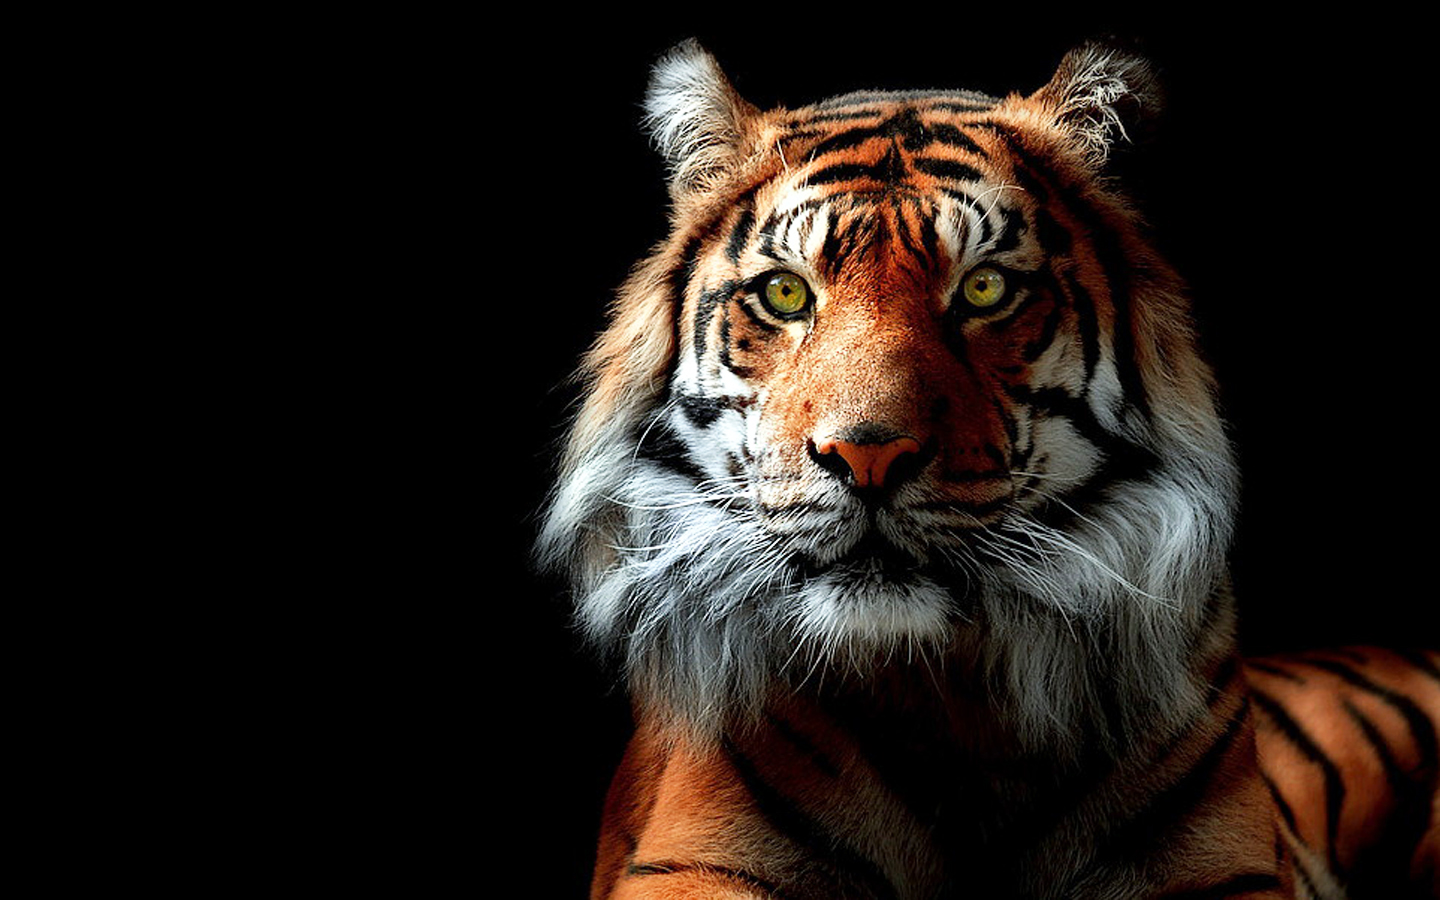 Related Wallpaper for Tiger Wallpaper 3D HD 1440x900